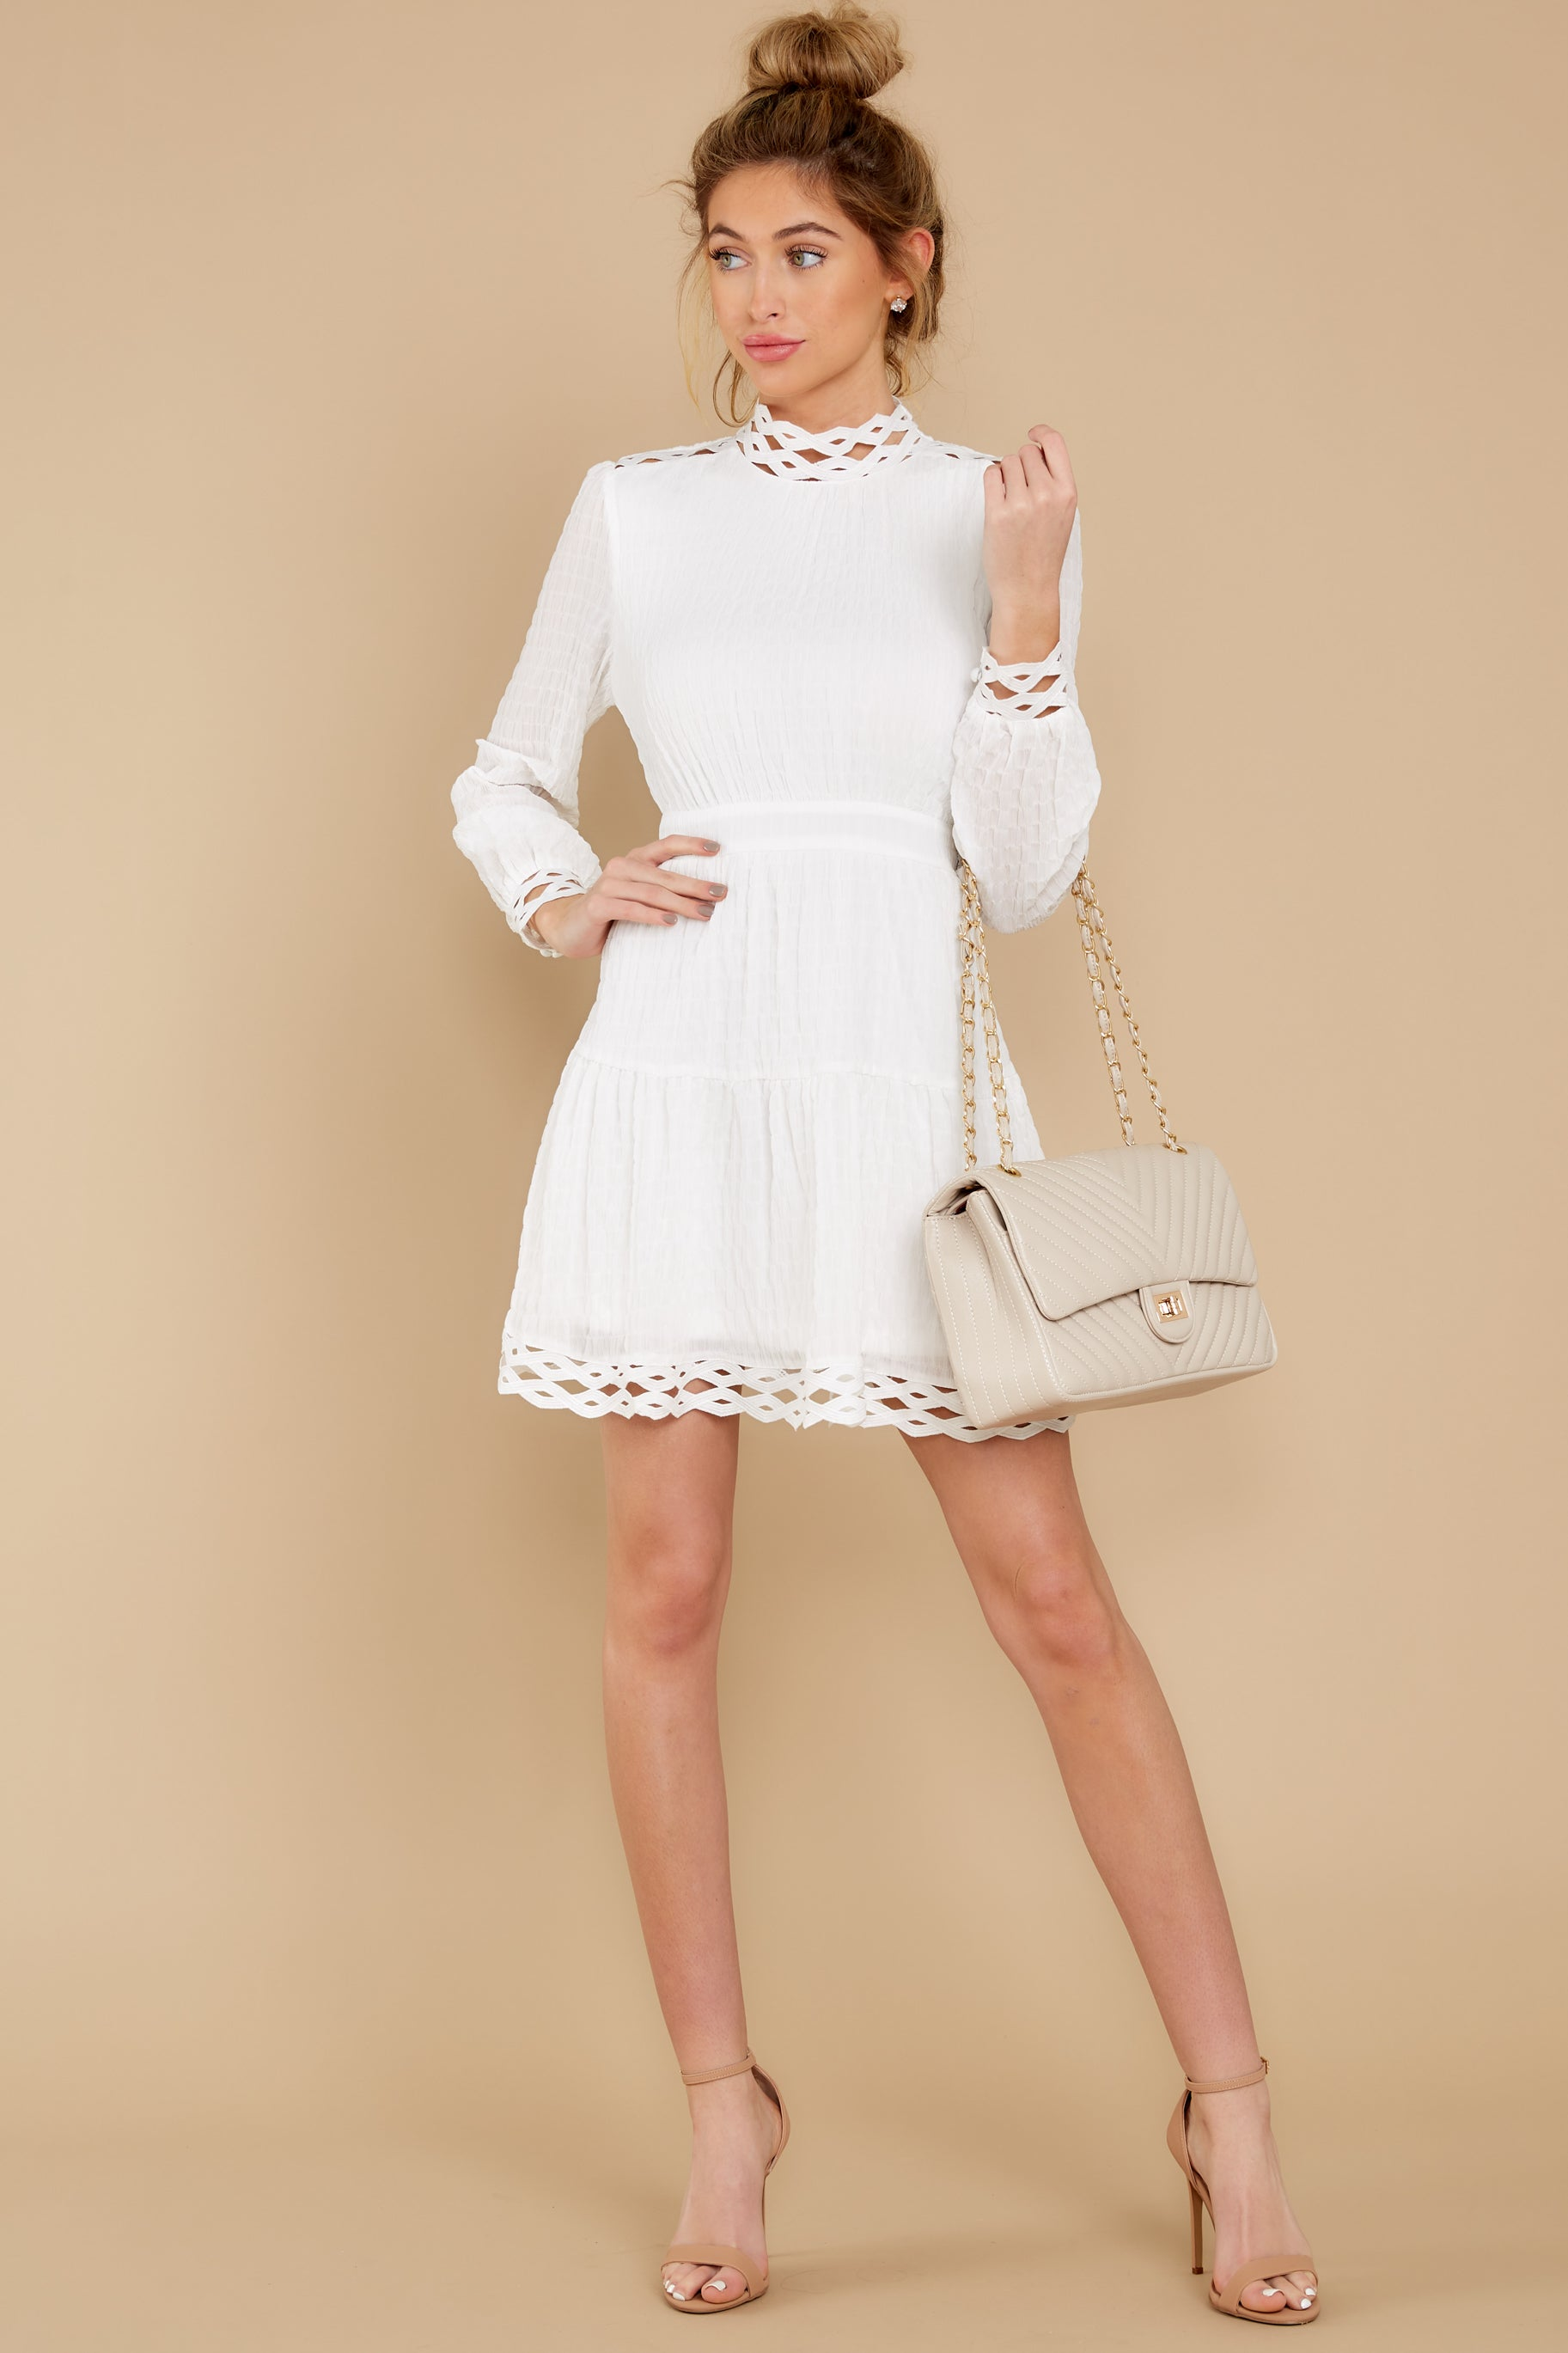 Modest, Mature, Mrs. Vintage Dresses – 20s, 30s, 40s, 50s, 60s Aura Leave It To Me White Dress $34.00 AT vintagedancer.com